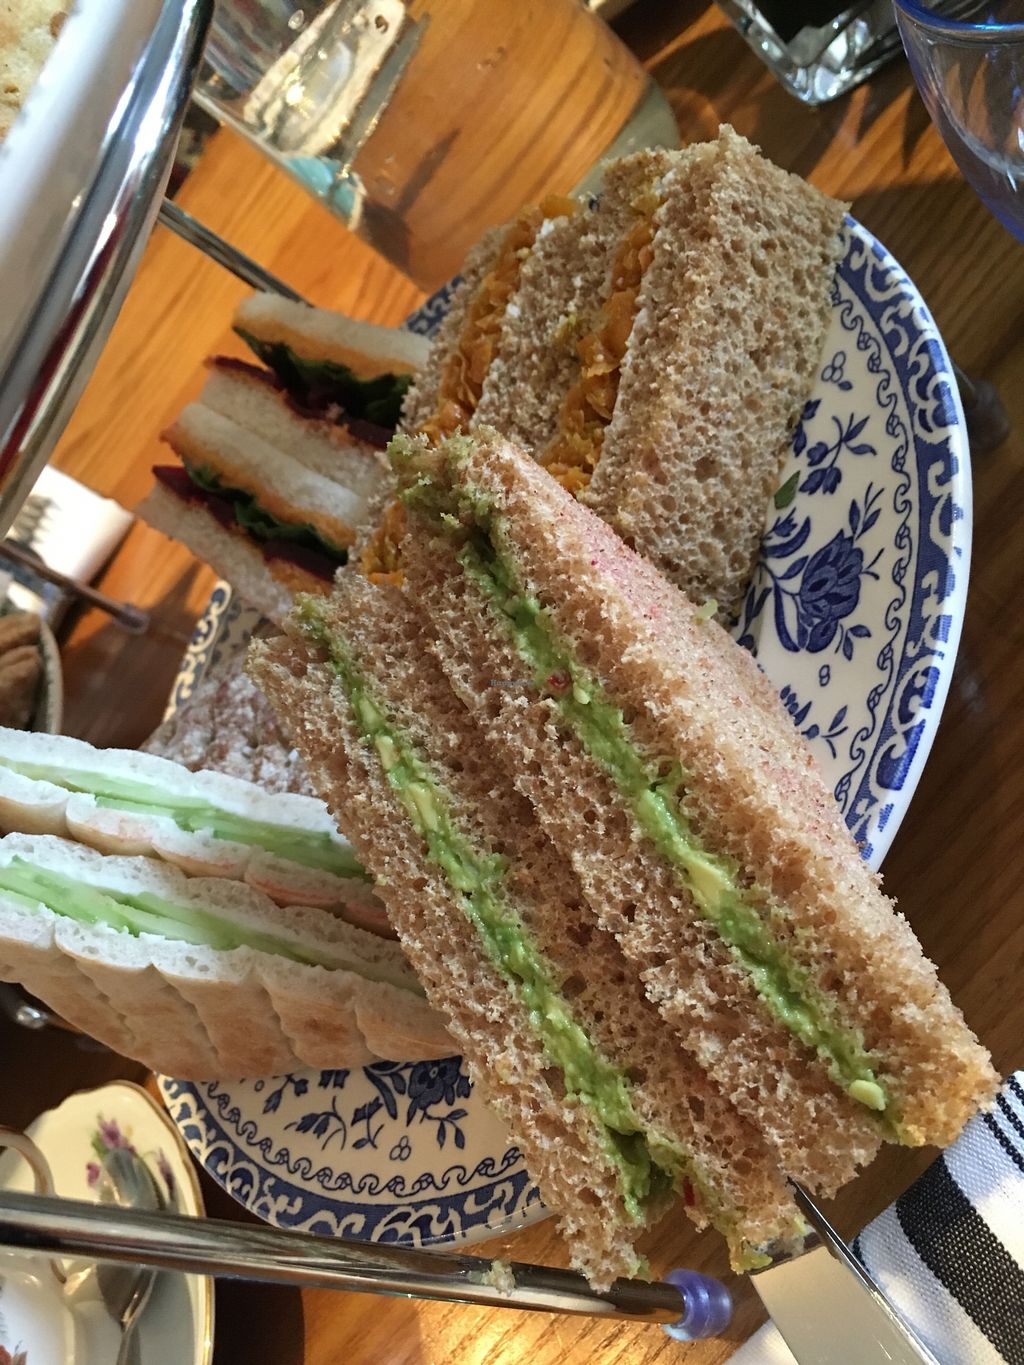 """Photo of 60 Hope Street  by <a href=""""/members/profile/avocado_jess"""">avocado_jess</a> <br/>Vegan sandwiches. Flavours: avocado; cucumber; mushroom pate; smokey houmous with beetroot and rocket; caramelised carrot chutney.  <br/> March 30, 2018  - <a href='/contact/abuse/image/116231/378174'>Report</a>"""